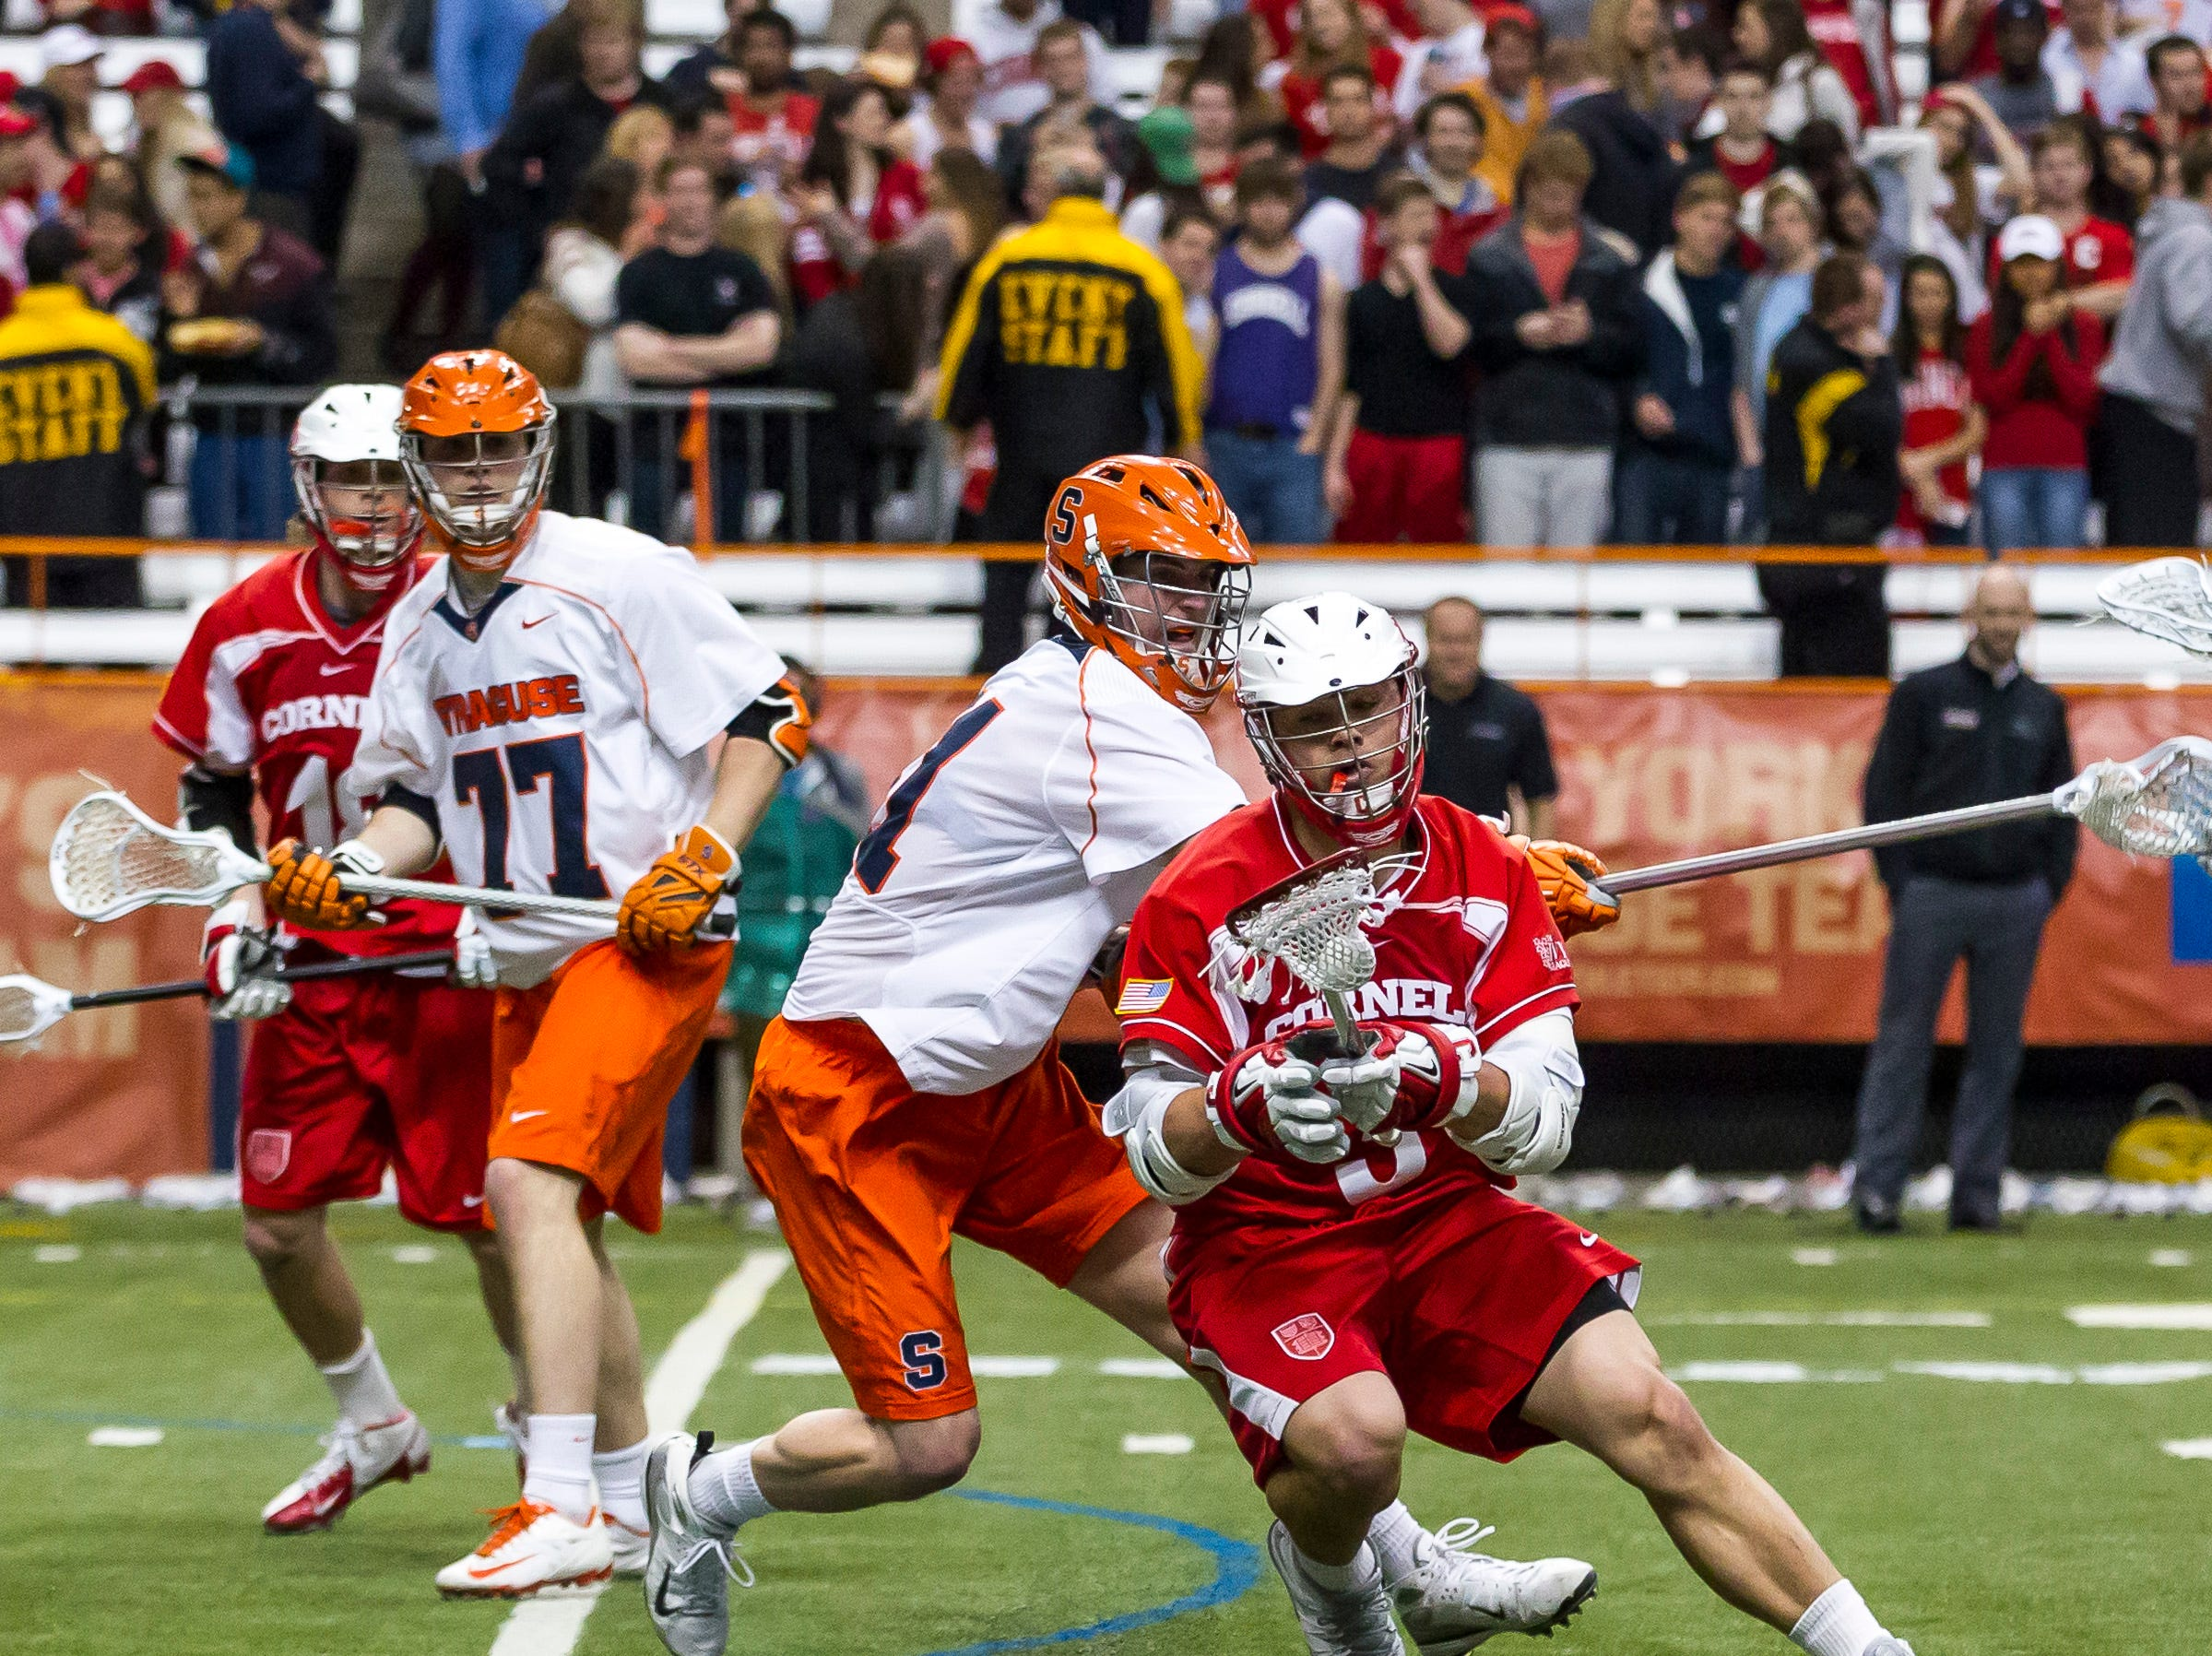 2013: Cornell senior Rob Pannell evades Syracuse junior David Hamlin during the first half as both teams battled in college mens lacrosse Wednesday night in Syracuse University's Carrier Dome.